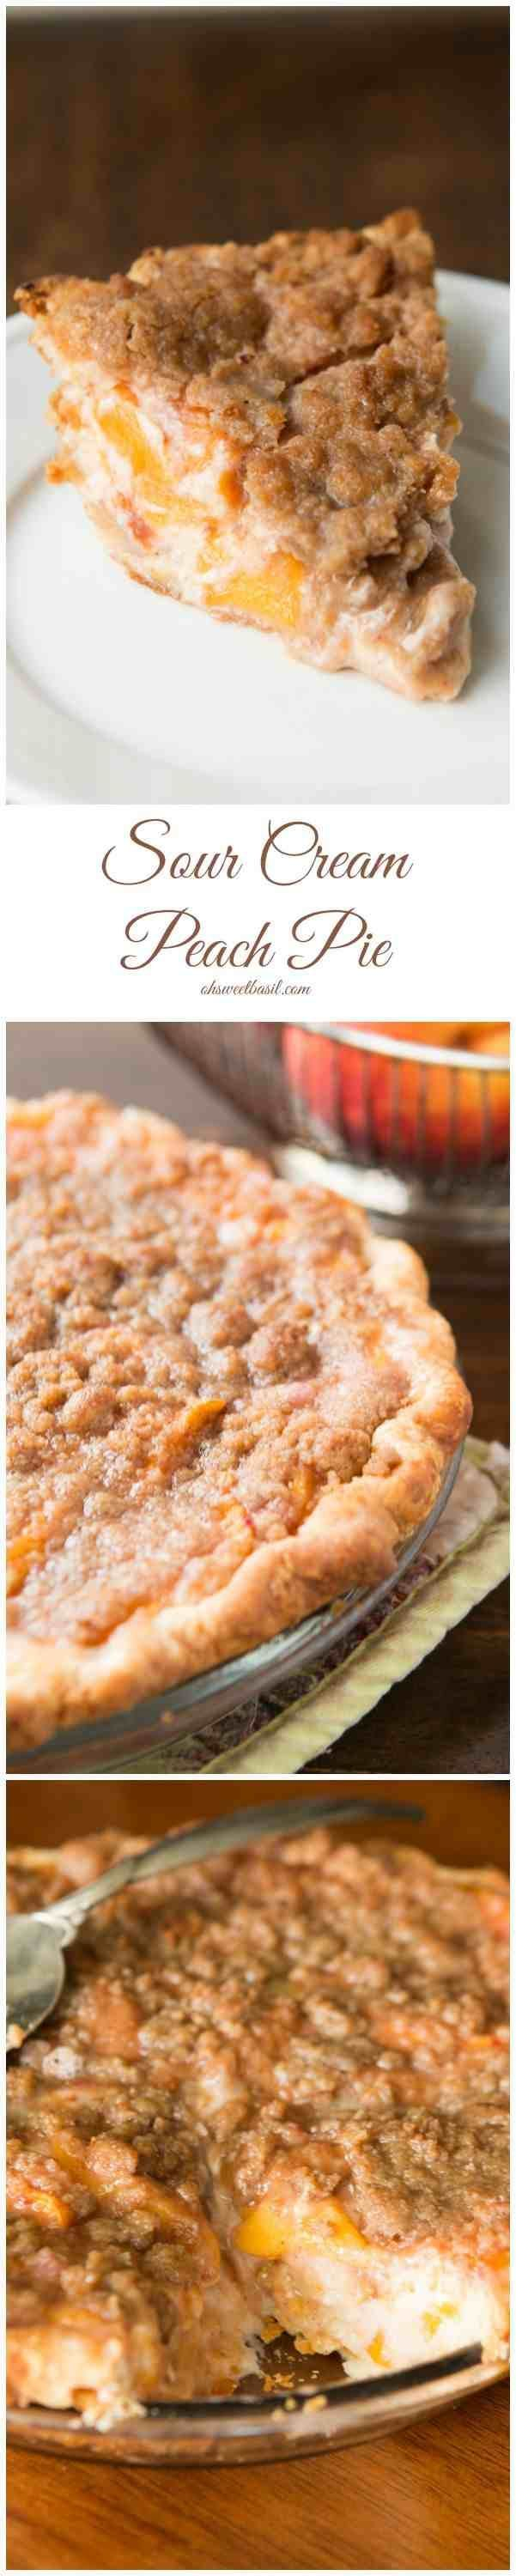 Our favorite pie! Sour cream peach pie with this awesome brown sugar crumble topping!!